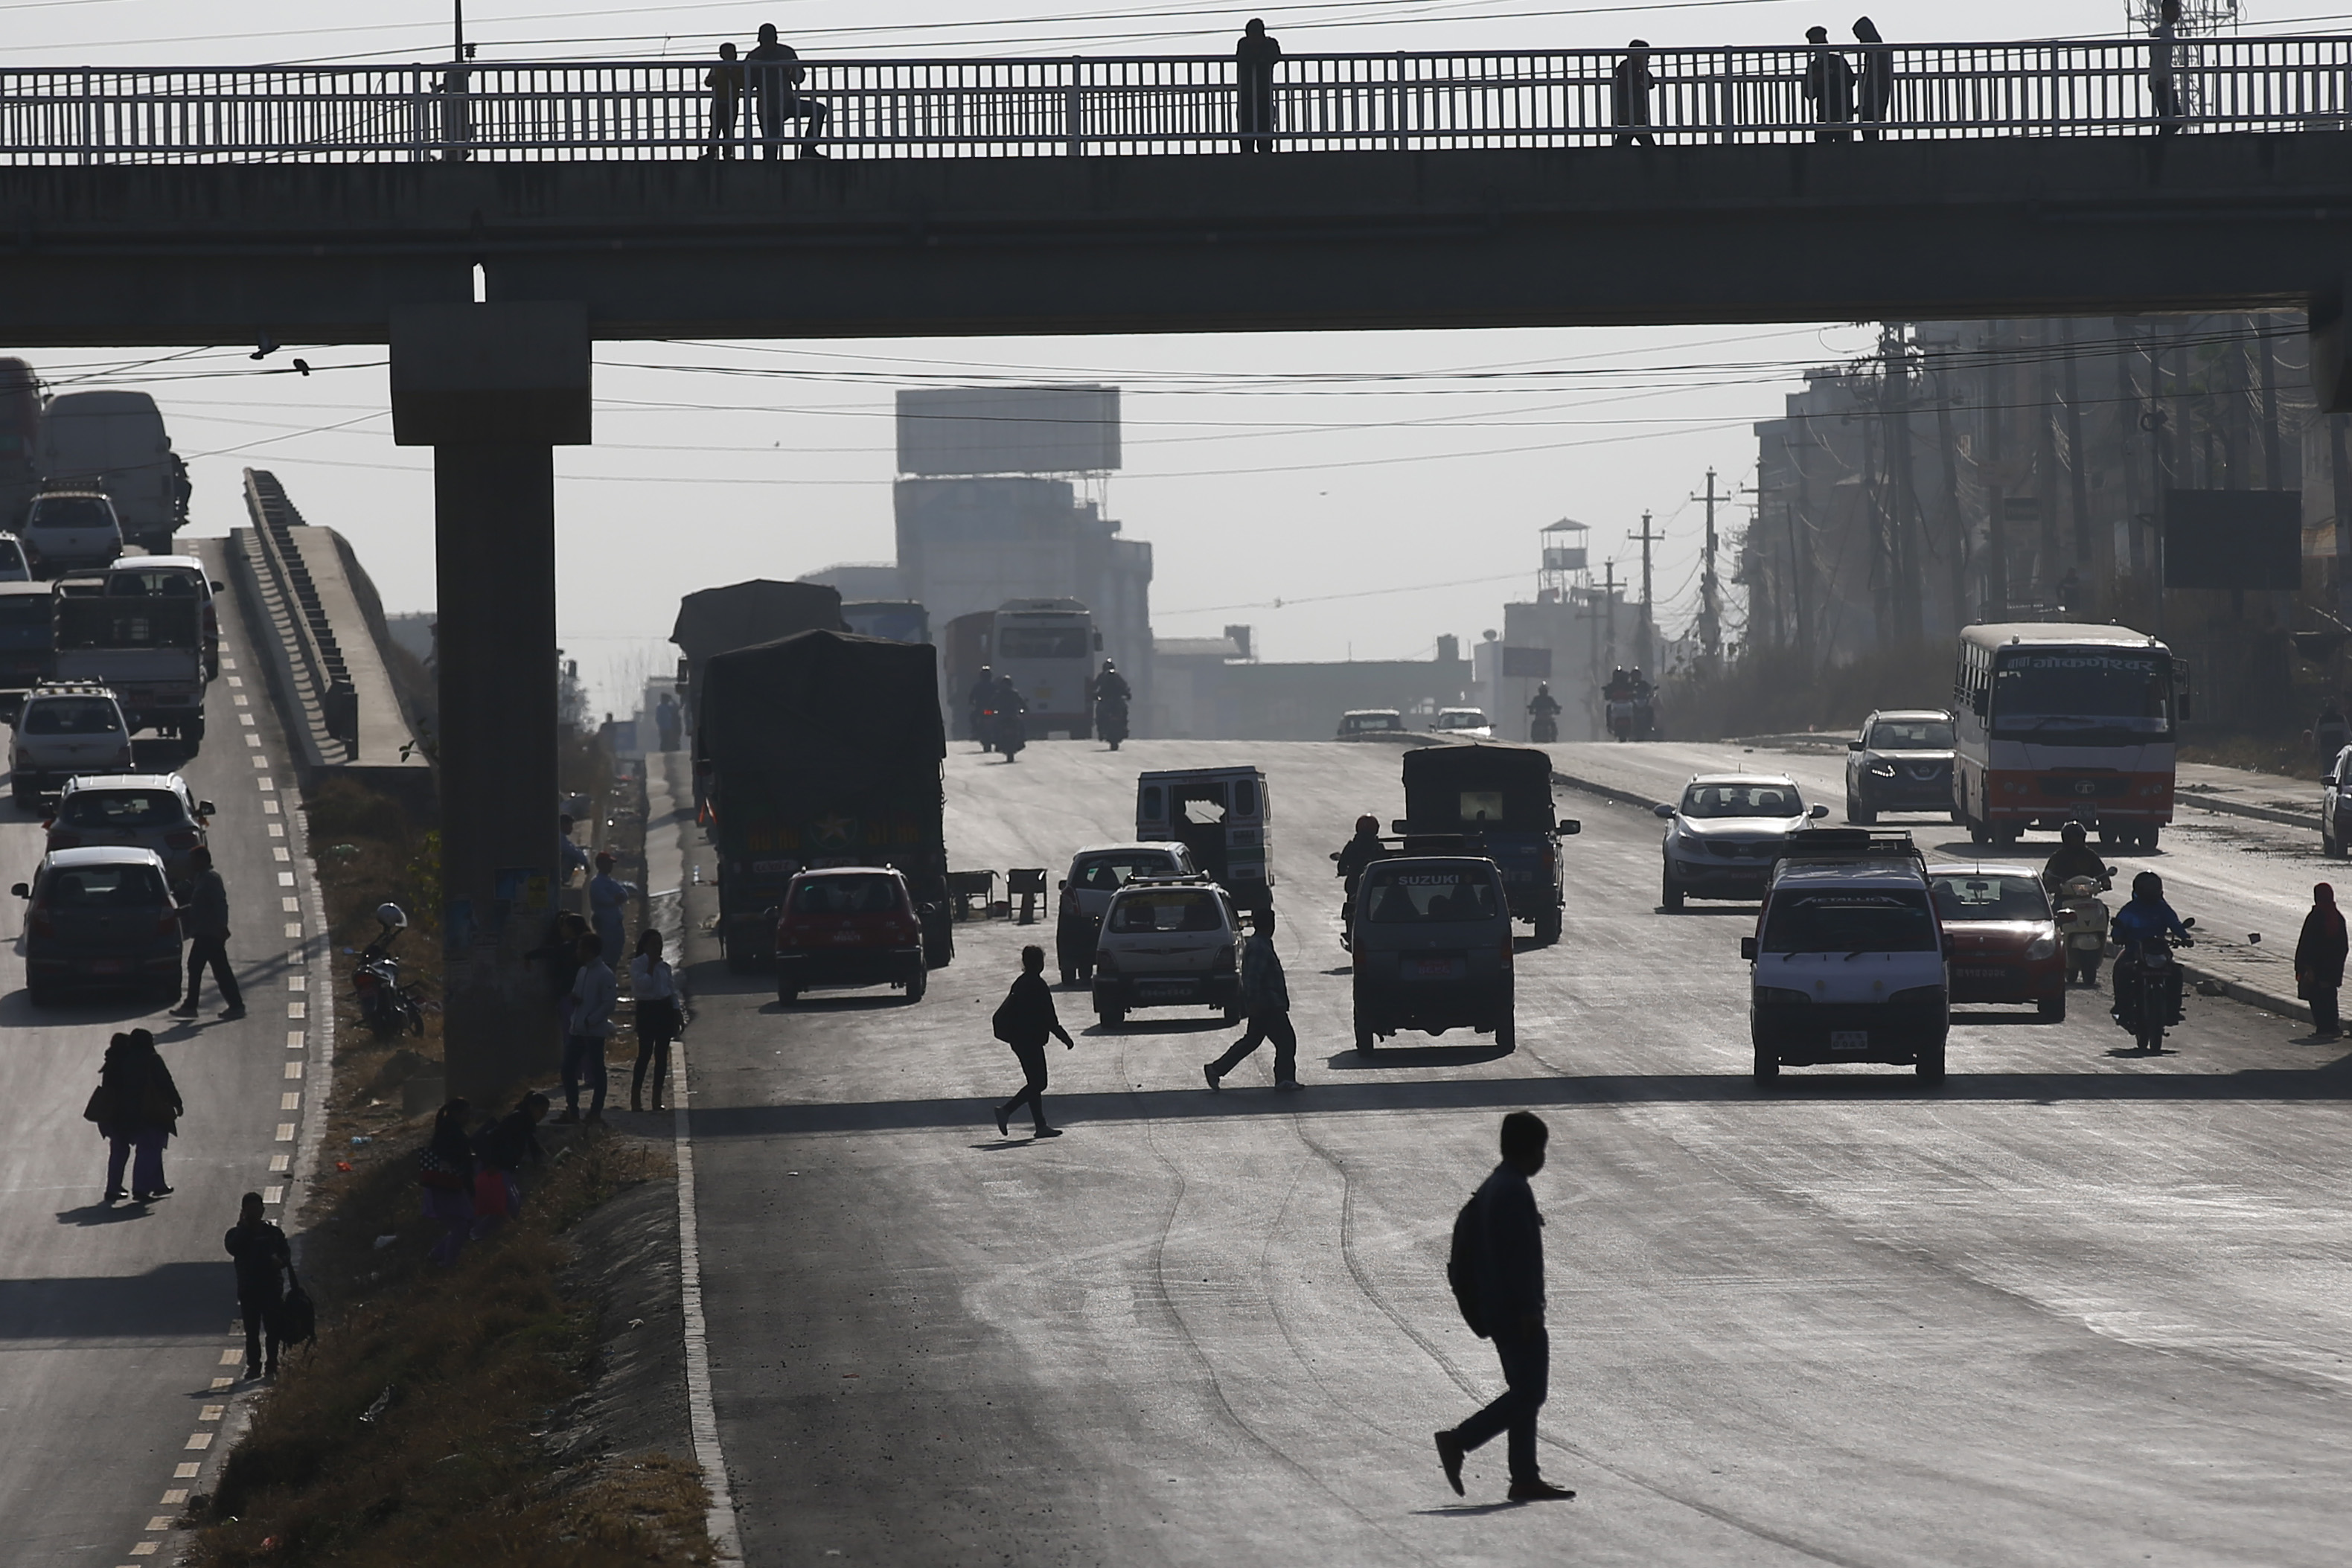 Jay-walkers cross a highway despite presence of overhead bridges along the newly reconstructed Koteshwor-Kalanki stretch in Kathmandu, on Thursday, November 15, 2018. According to media sources, in the past three months, accidents along the road section have claimed nine lives and injured more than 170 persons. Photo: Skanda Gautam/THT